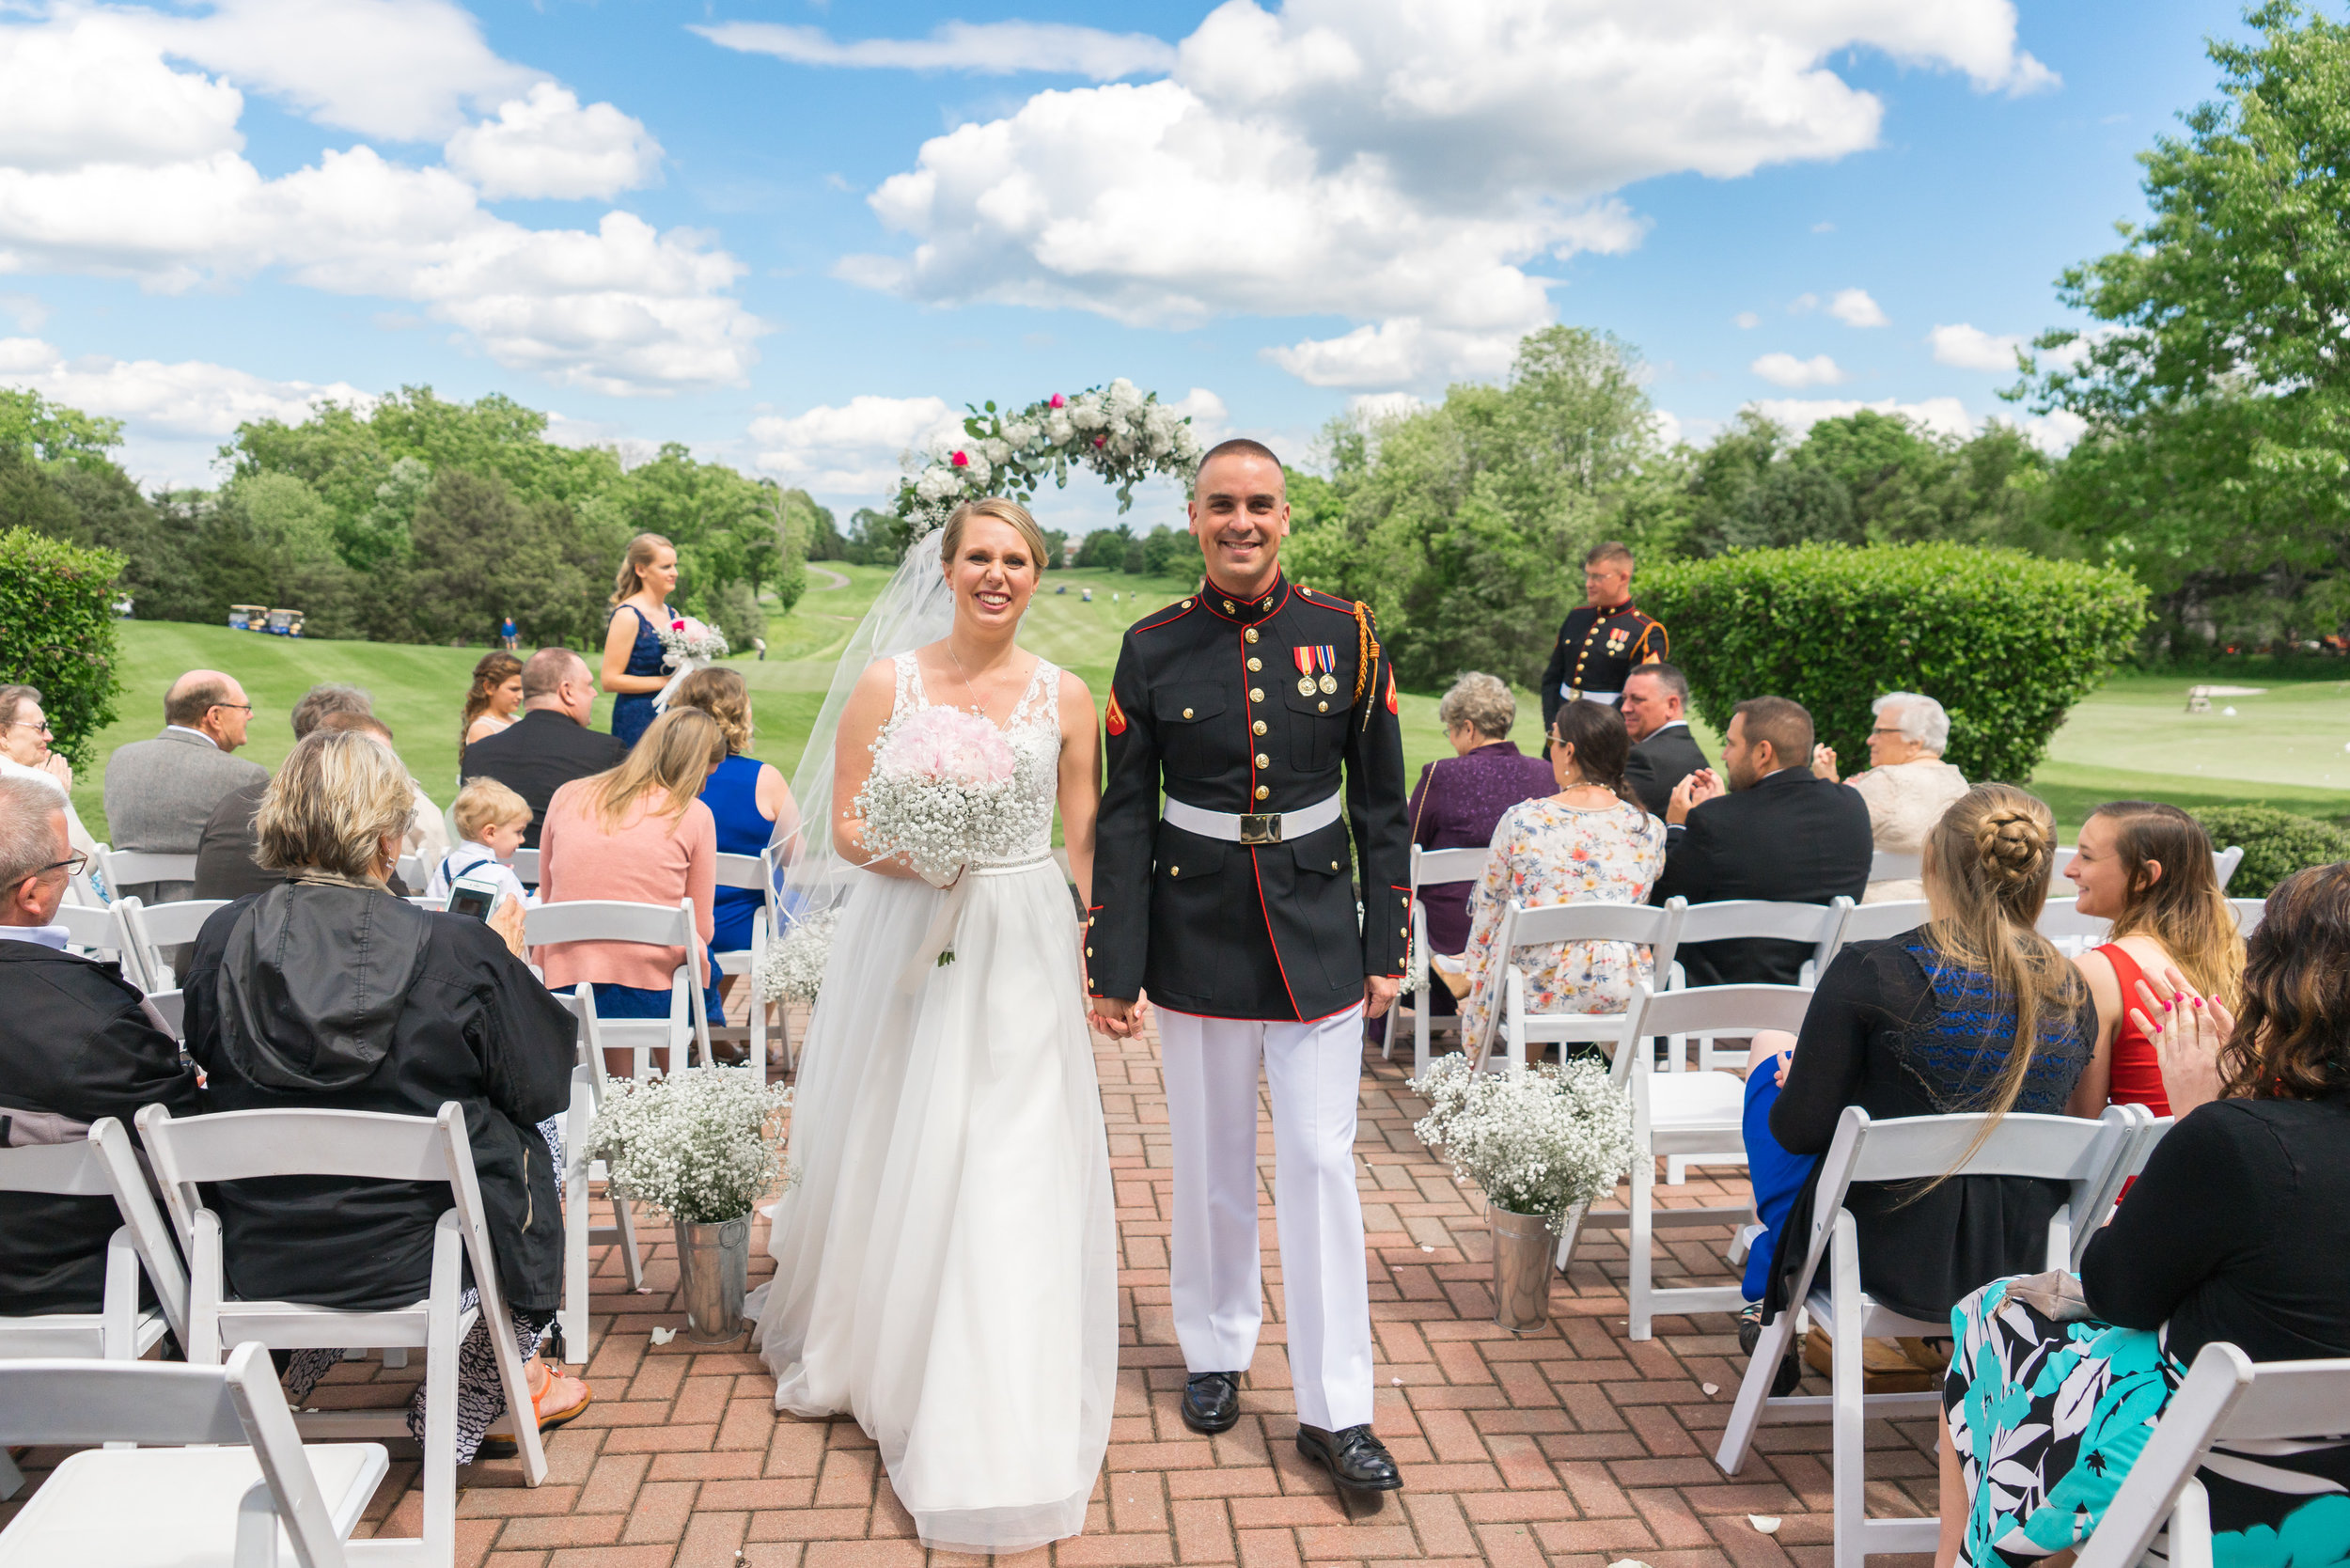 Bride and groom walking down the aisle at their summer golf course wedding